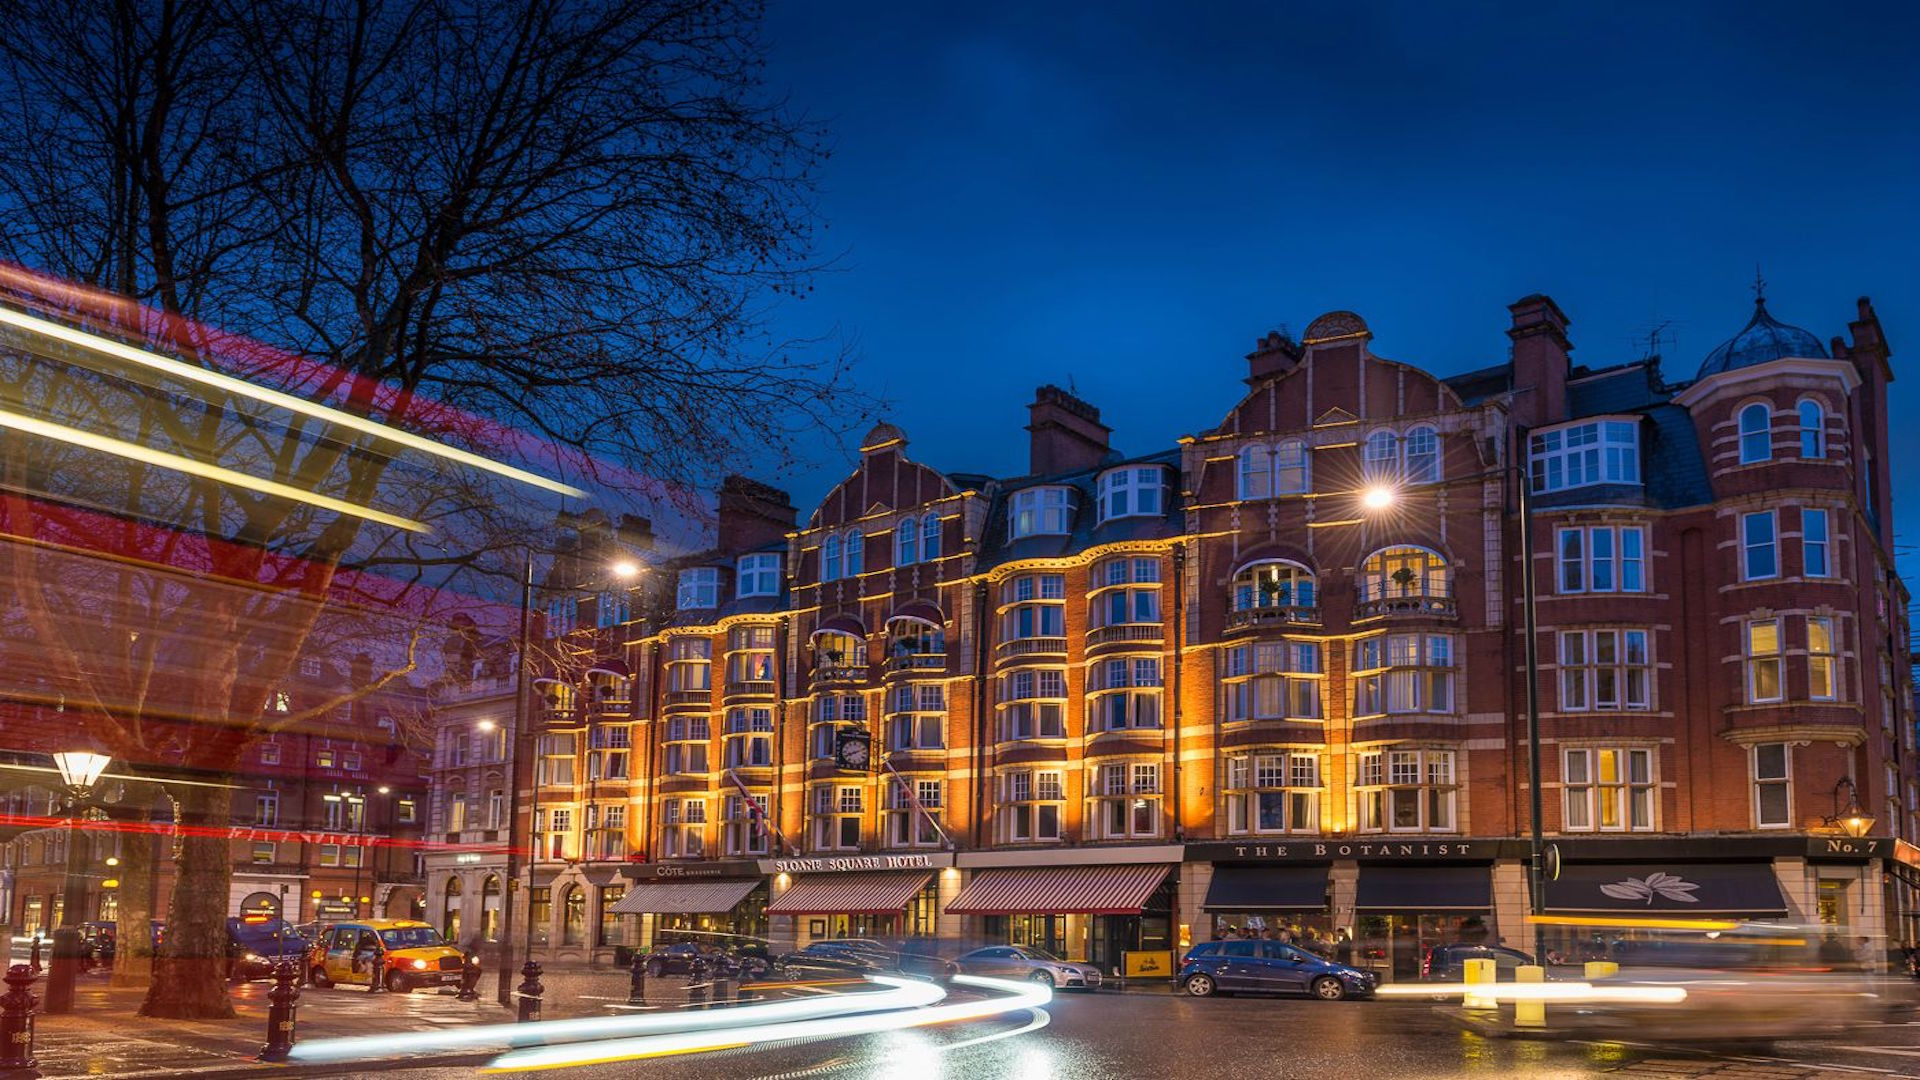 Chelsea Venues: Our Top 3 Must Visits